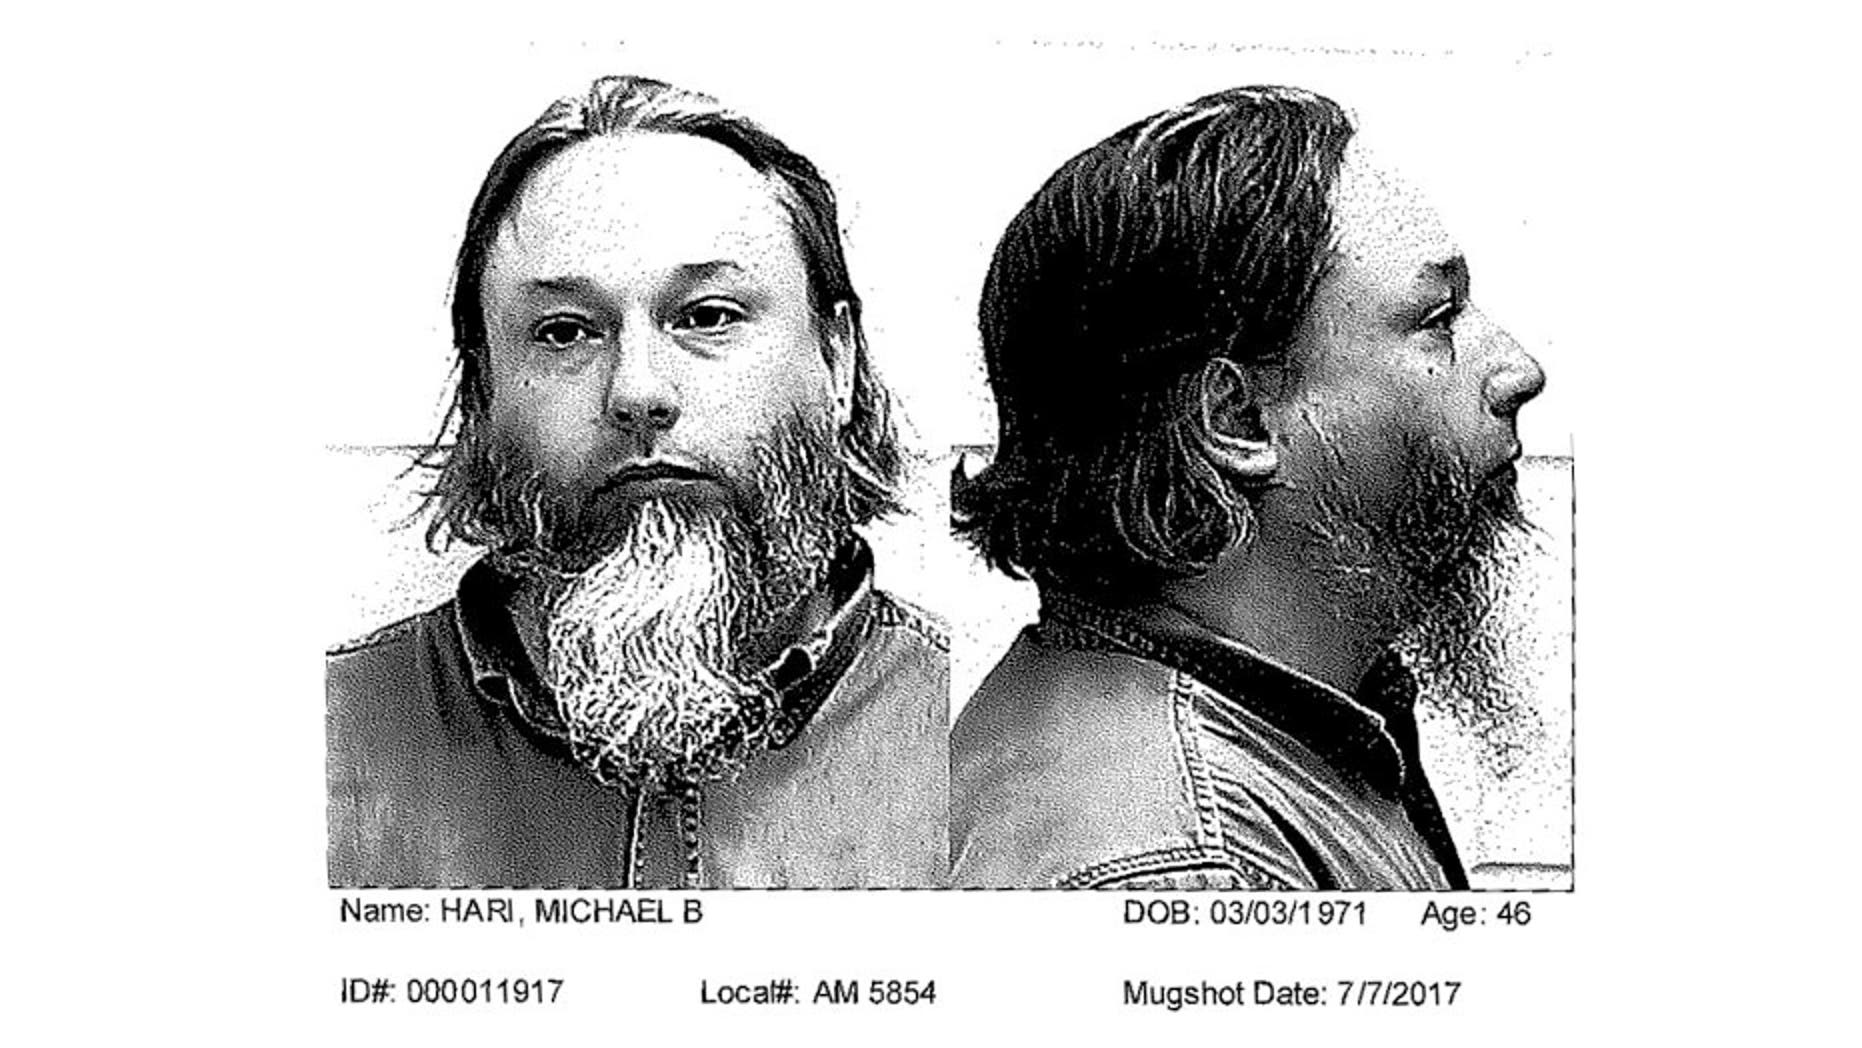 Michael Hari, seen in this July 2017 mugshot, is one of three men charged in connection with the bombing